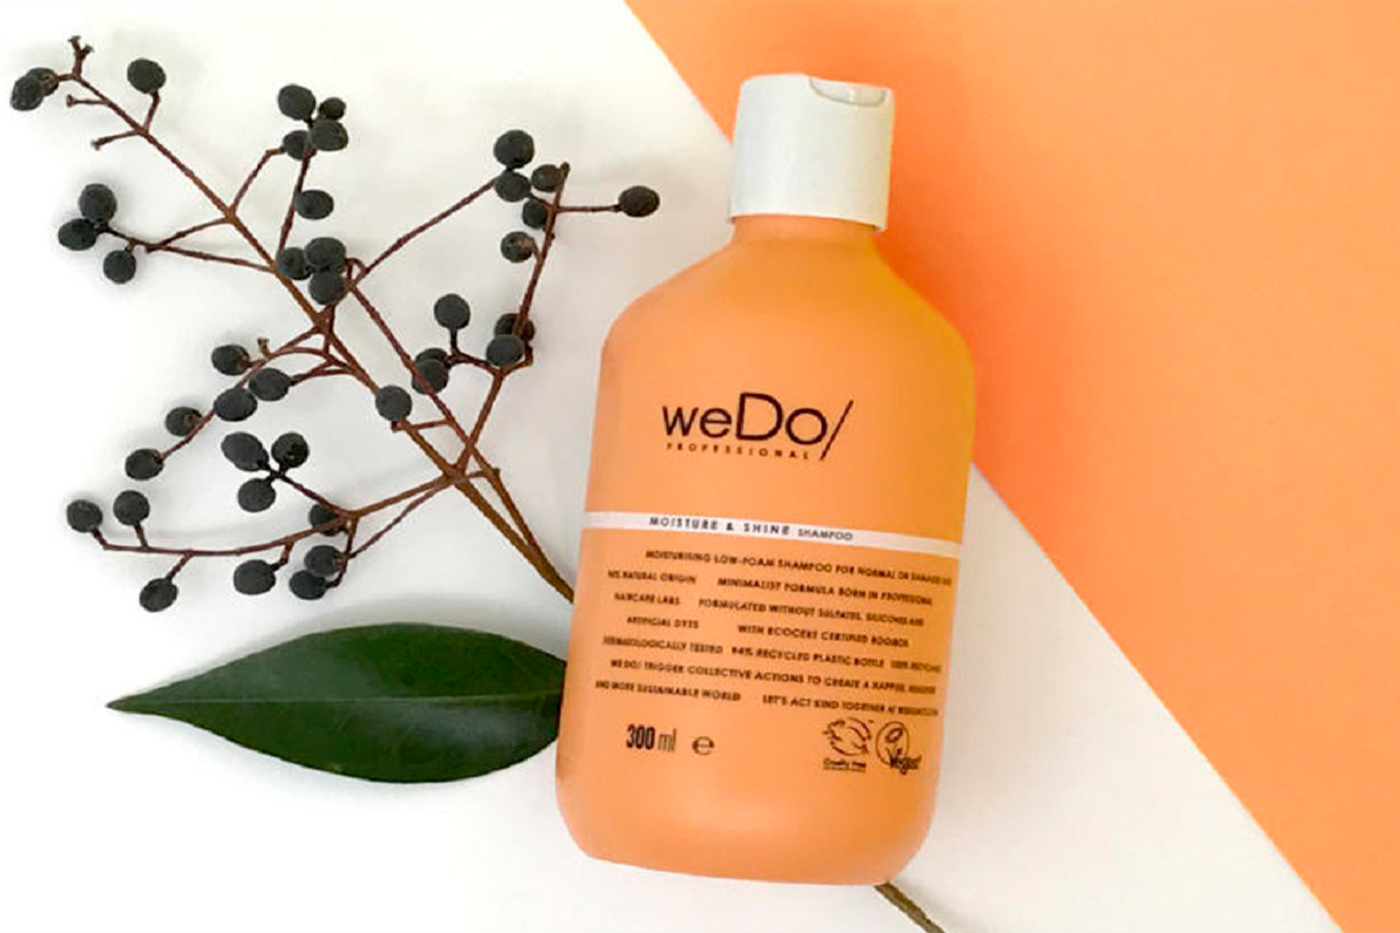 1. Wella launches weDo/ Professional, an eco-ethical brand in India